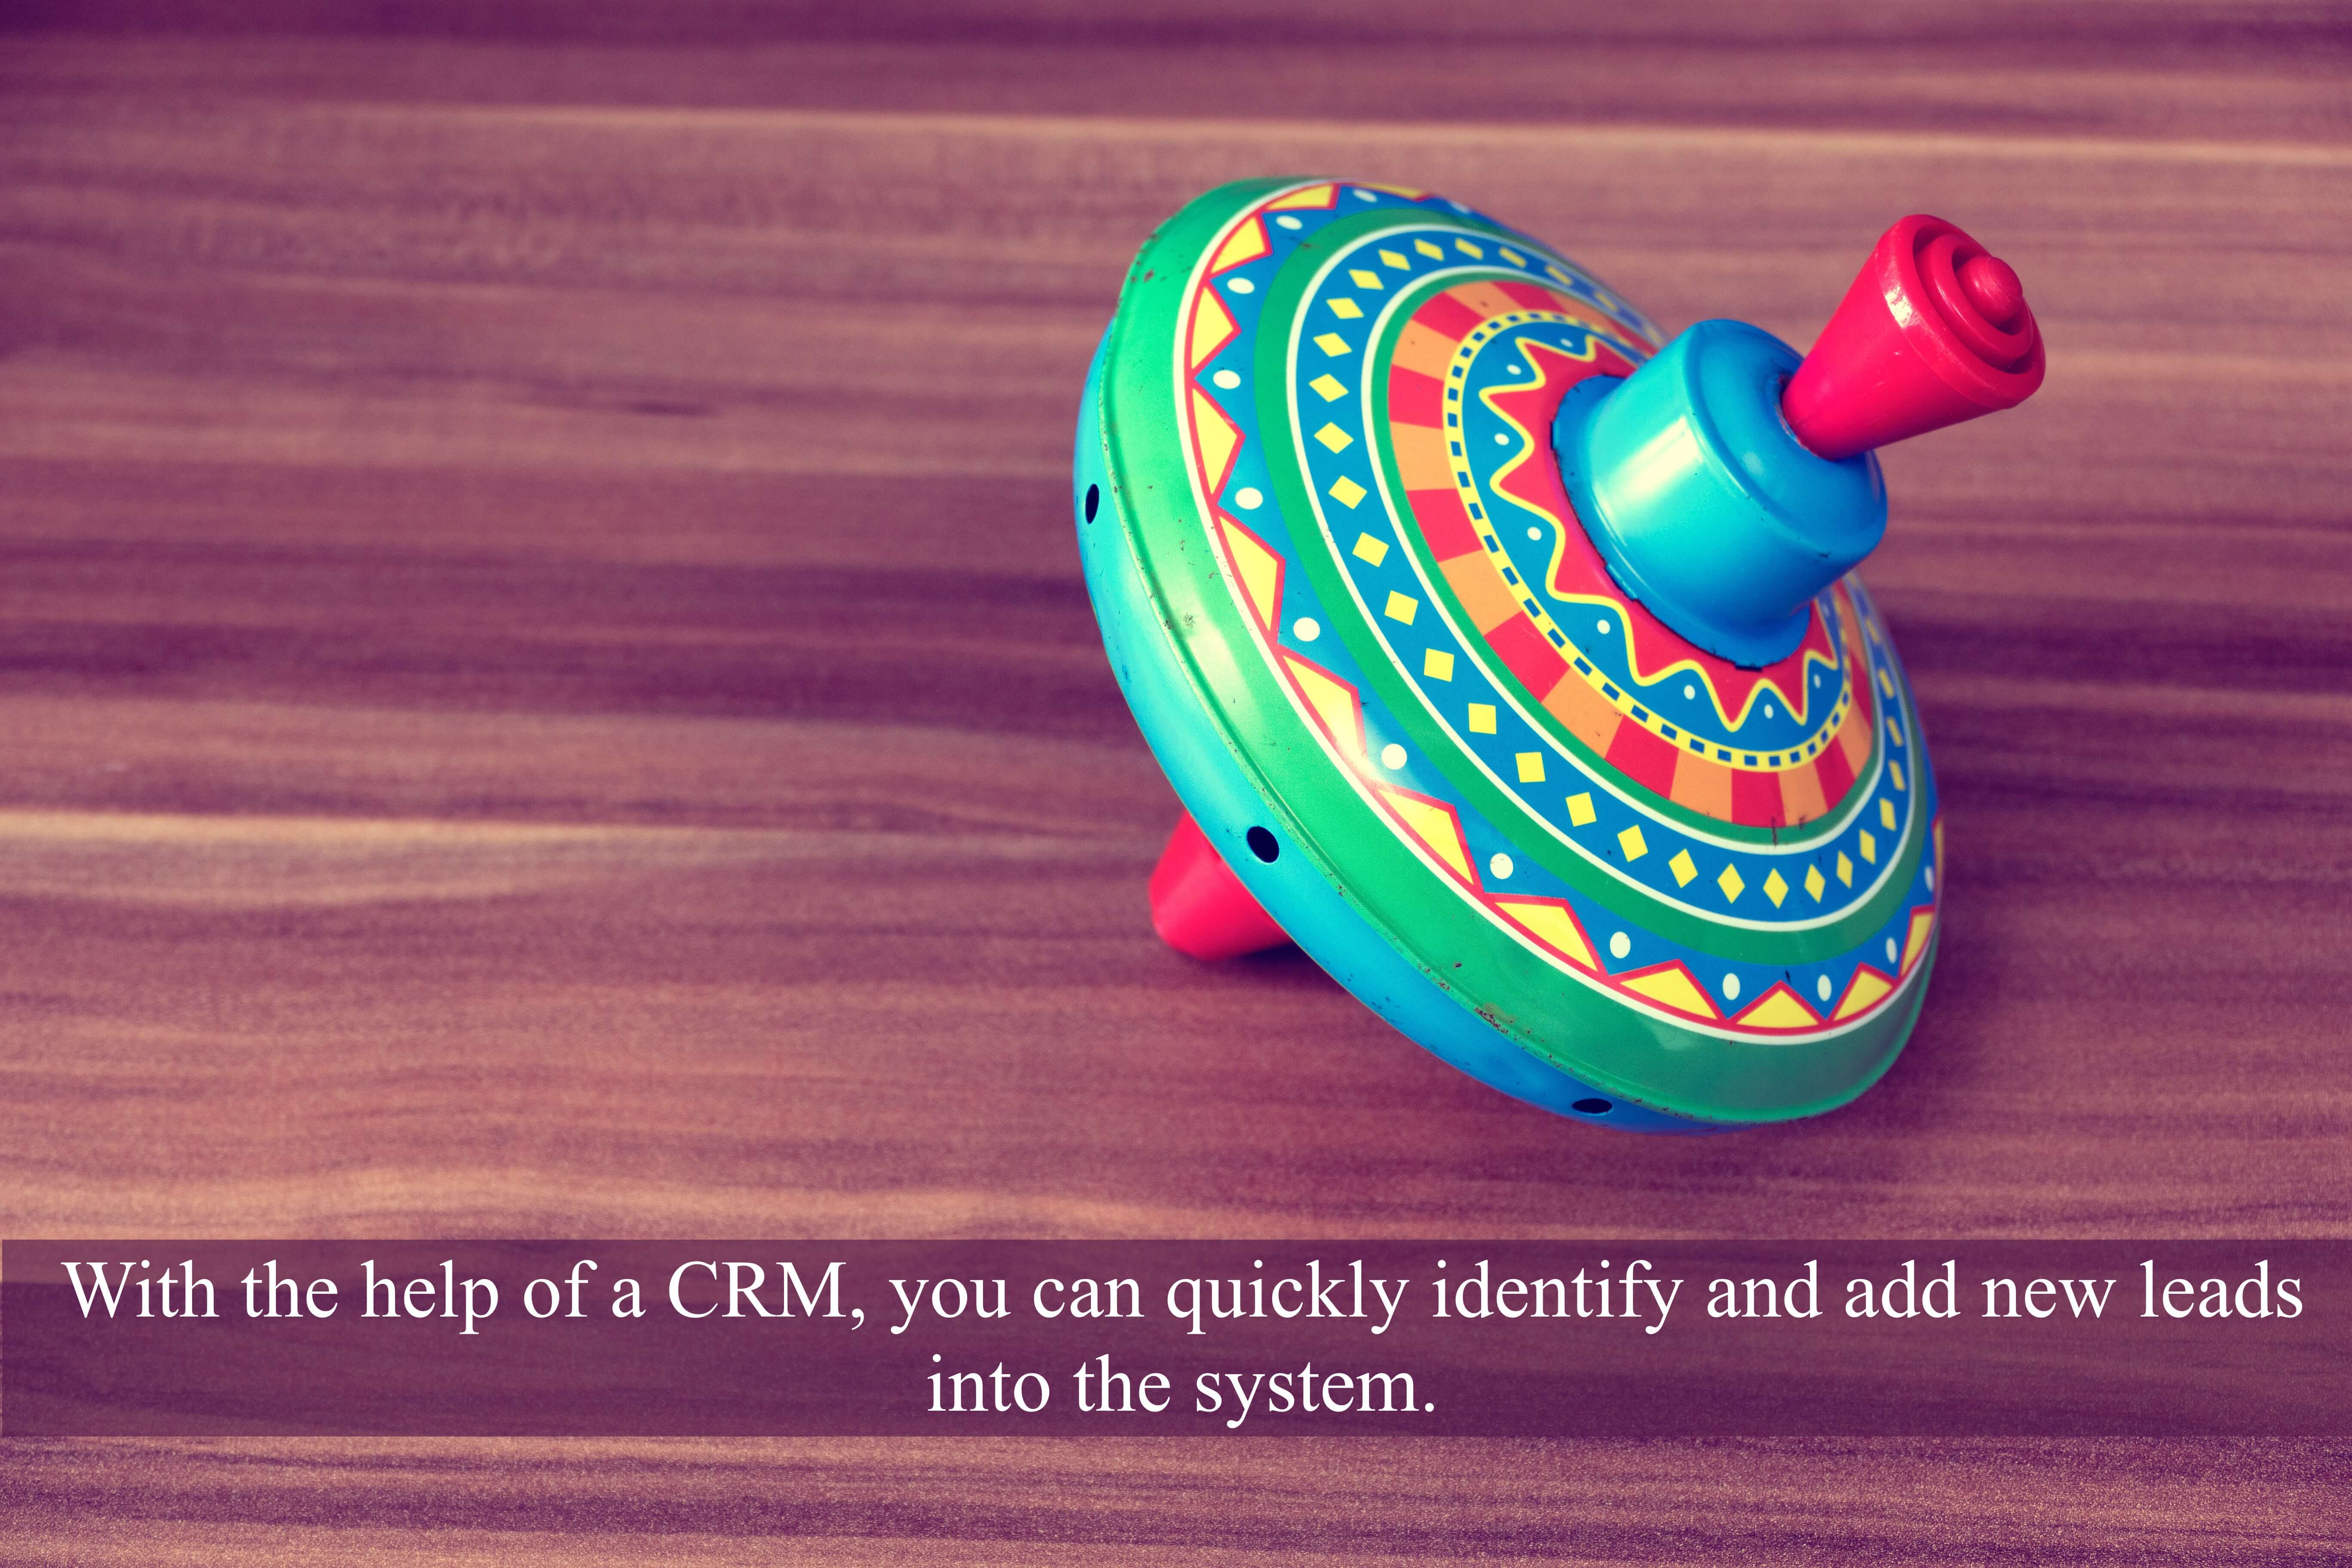 With the help of a CRM, you can quickly identify and add new leads into the system.